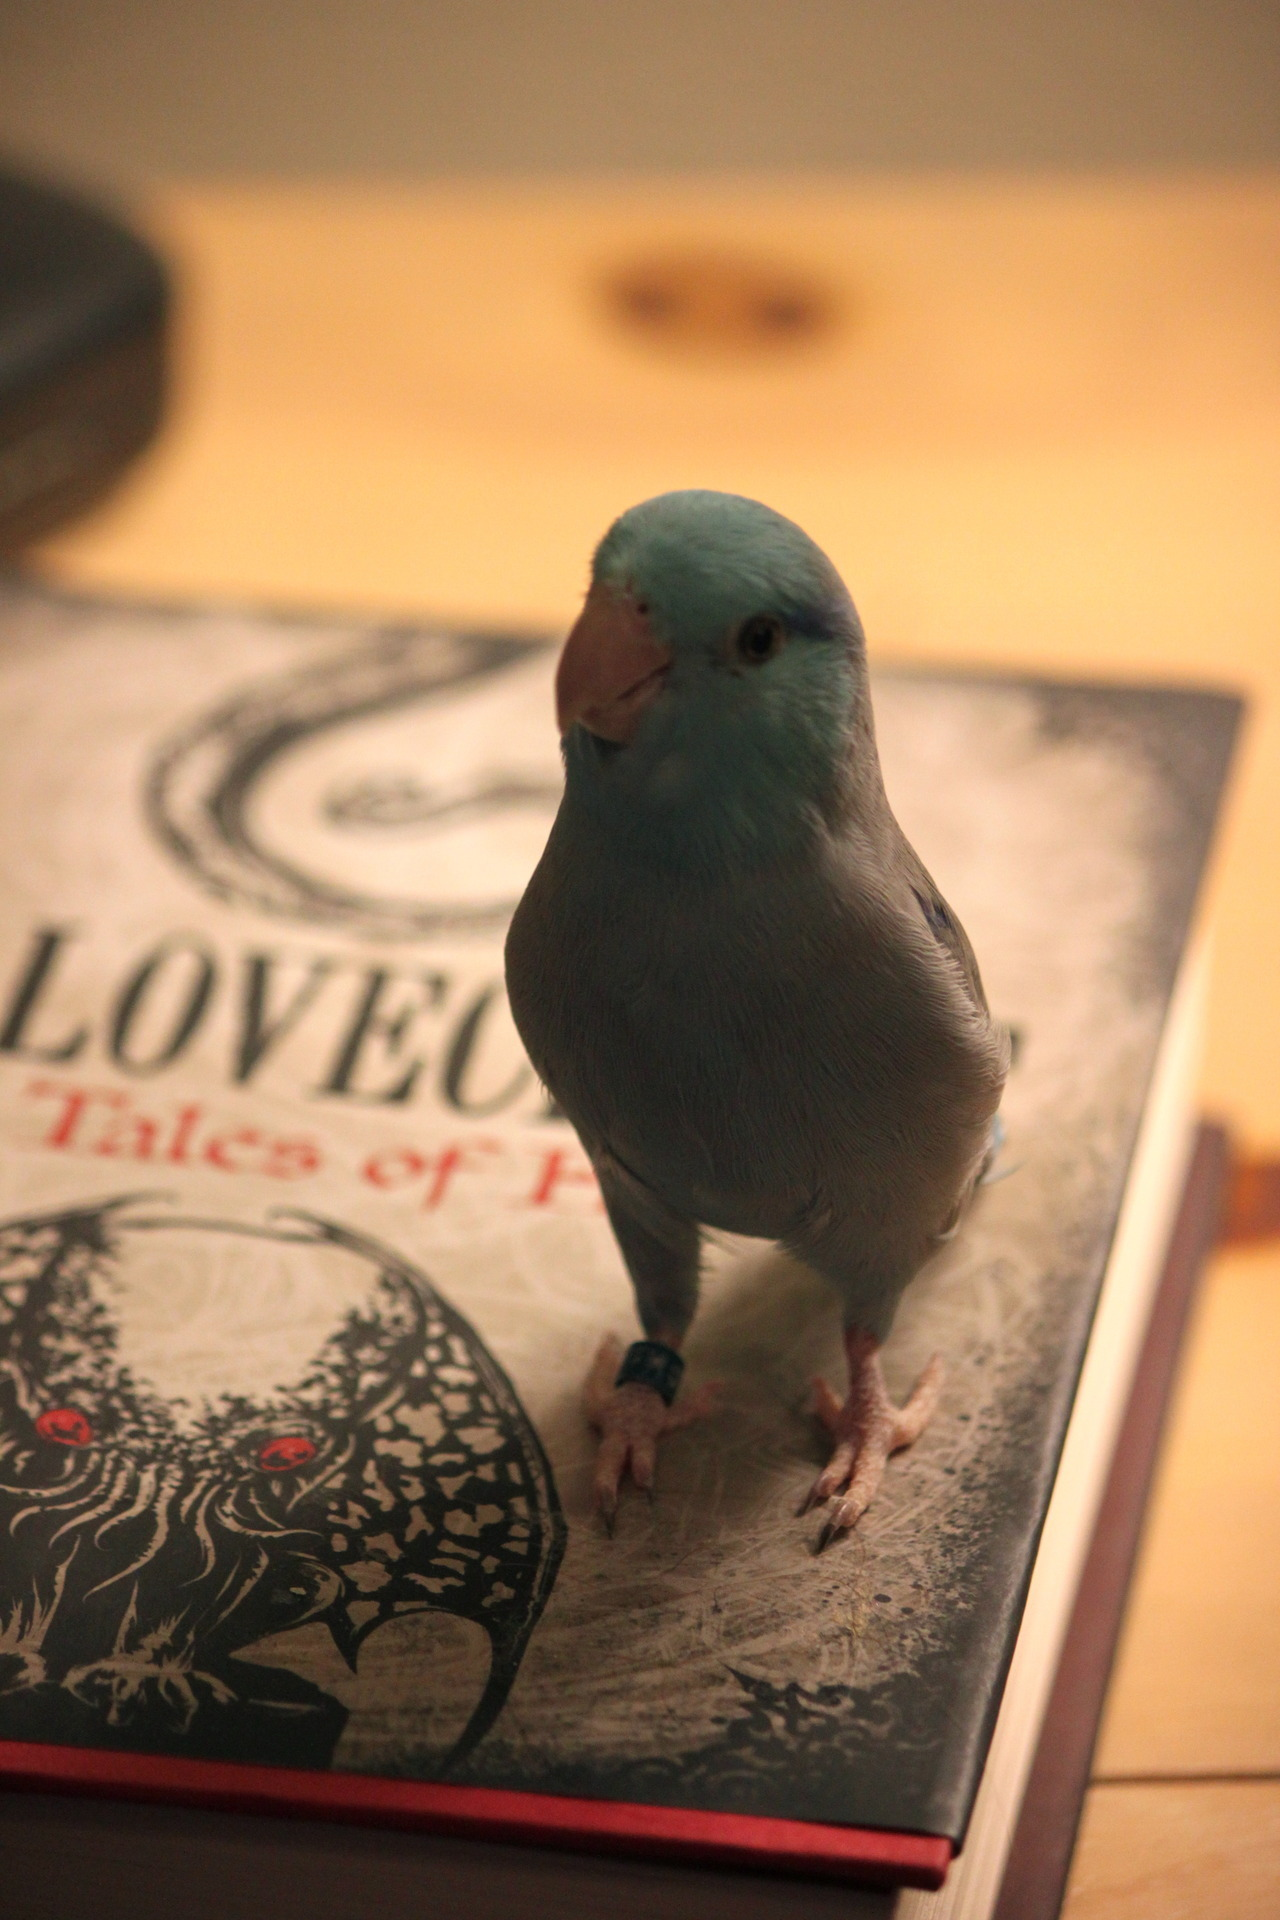 darwinthebird:  I am a Lovecraftian bird at heart.